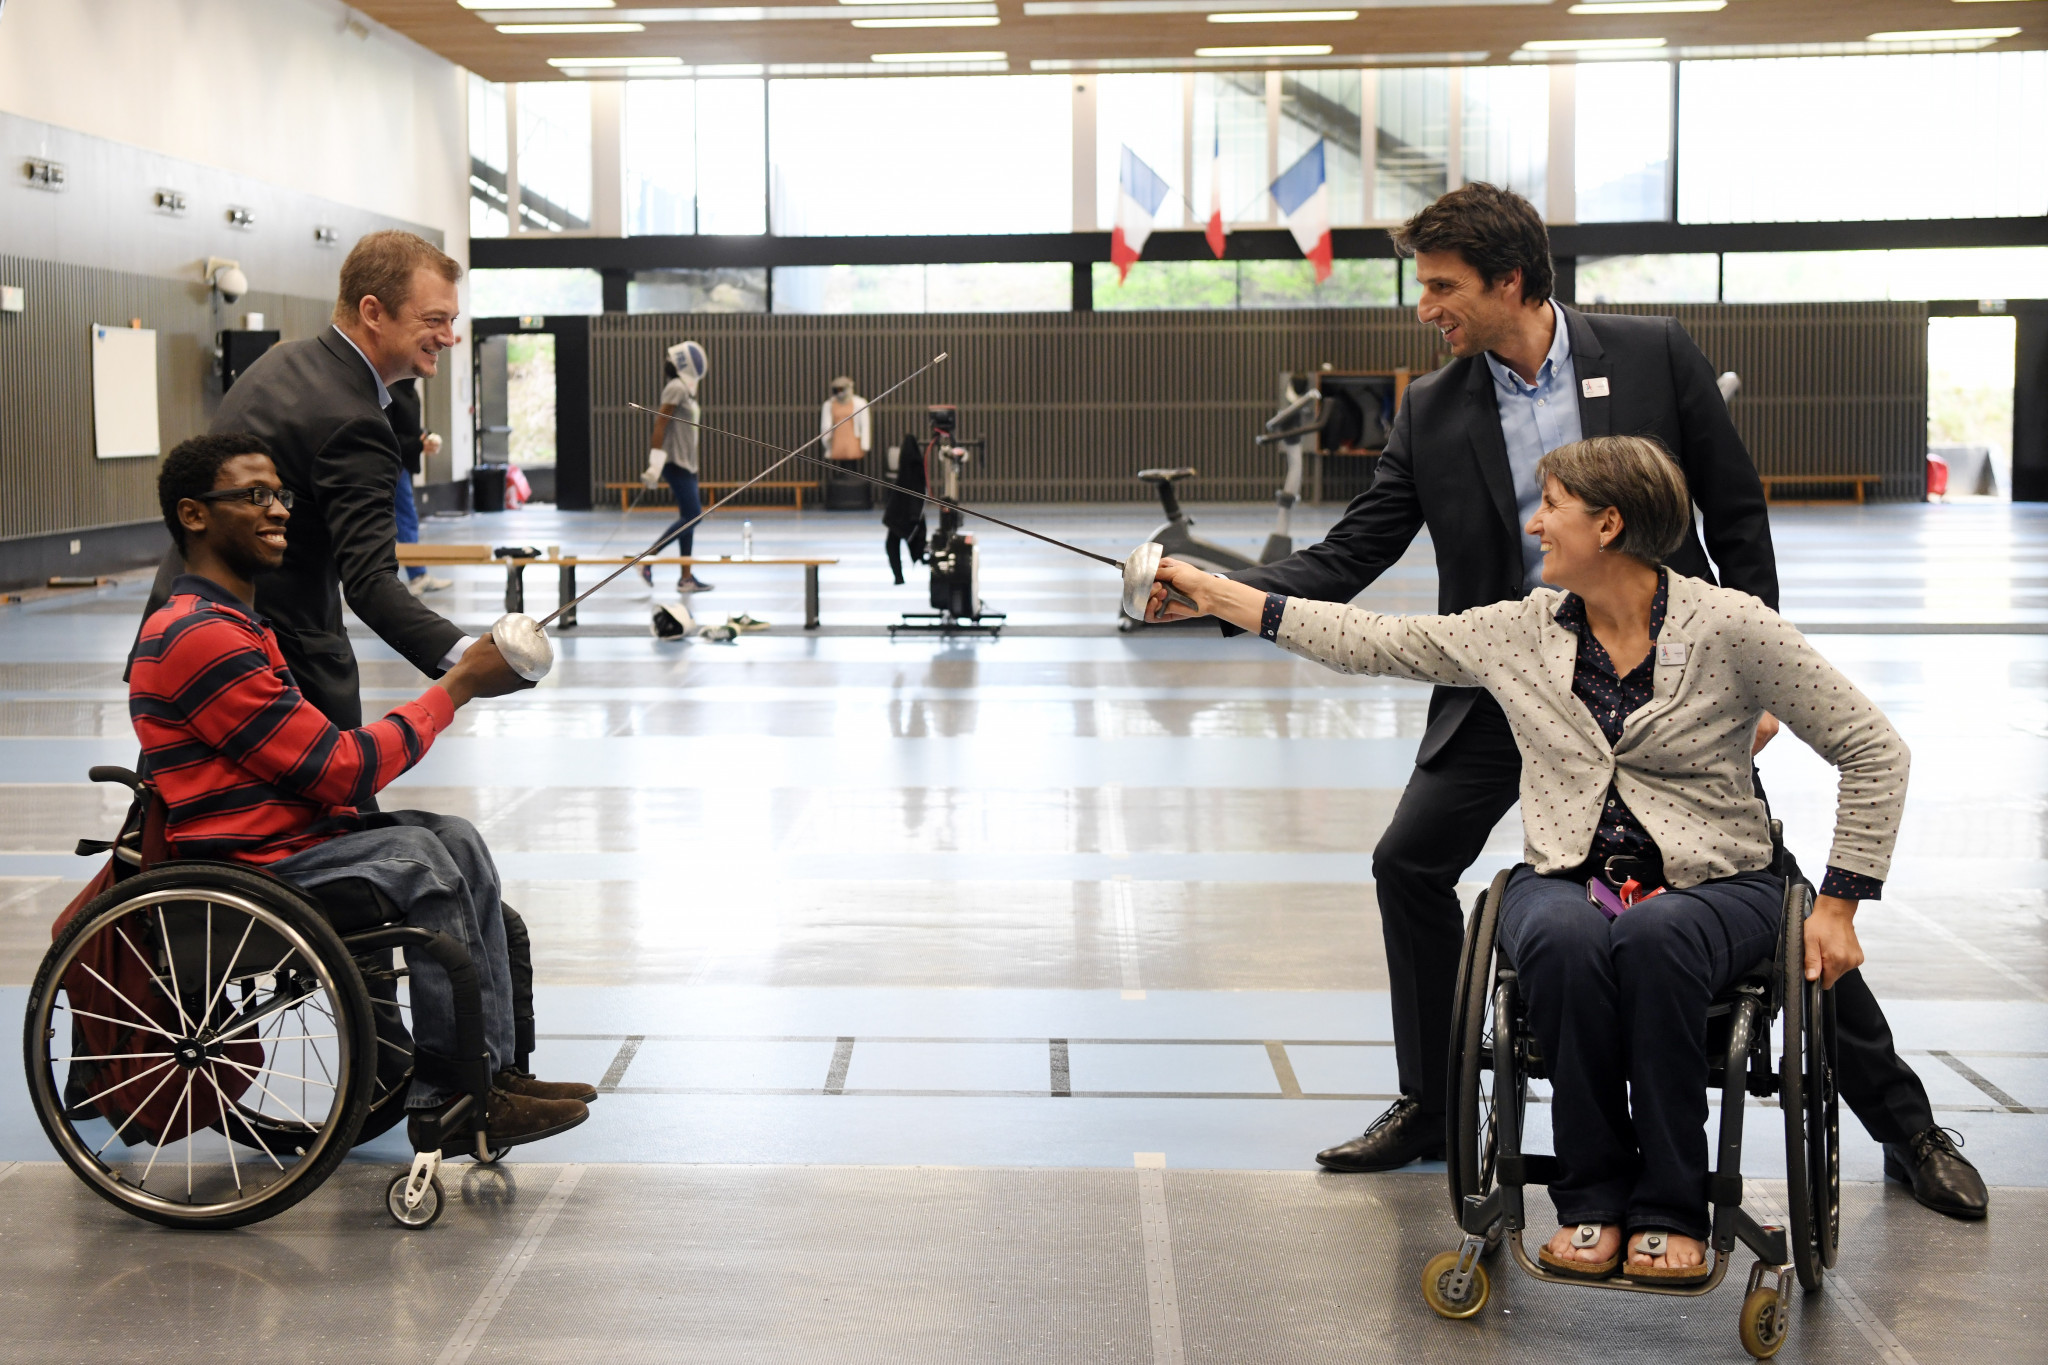 IPC President Andrew Parsons, left, and Paris 2024 counterpart Tony Estanguet, right, tried their hand at fencing ©Paris 2024